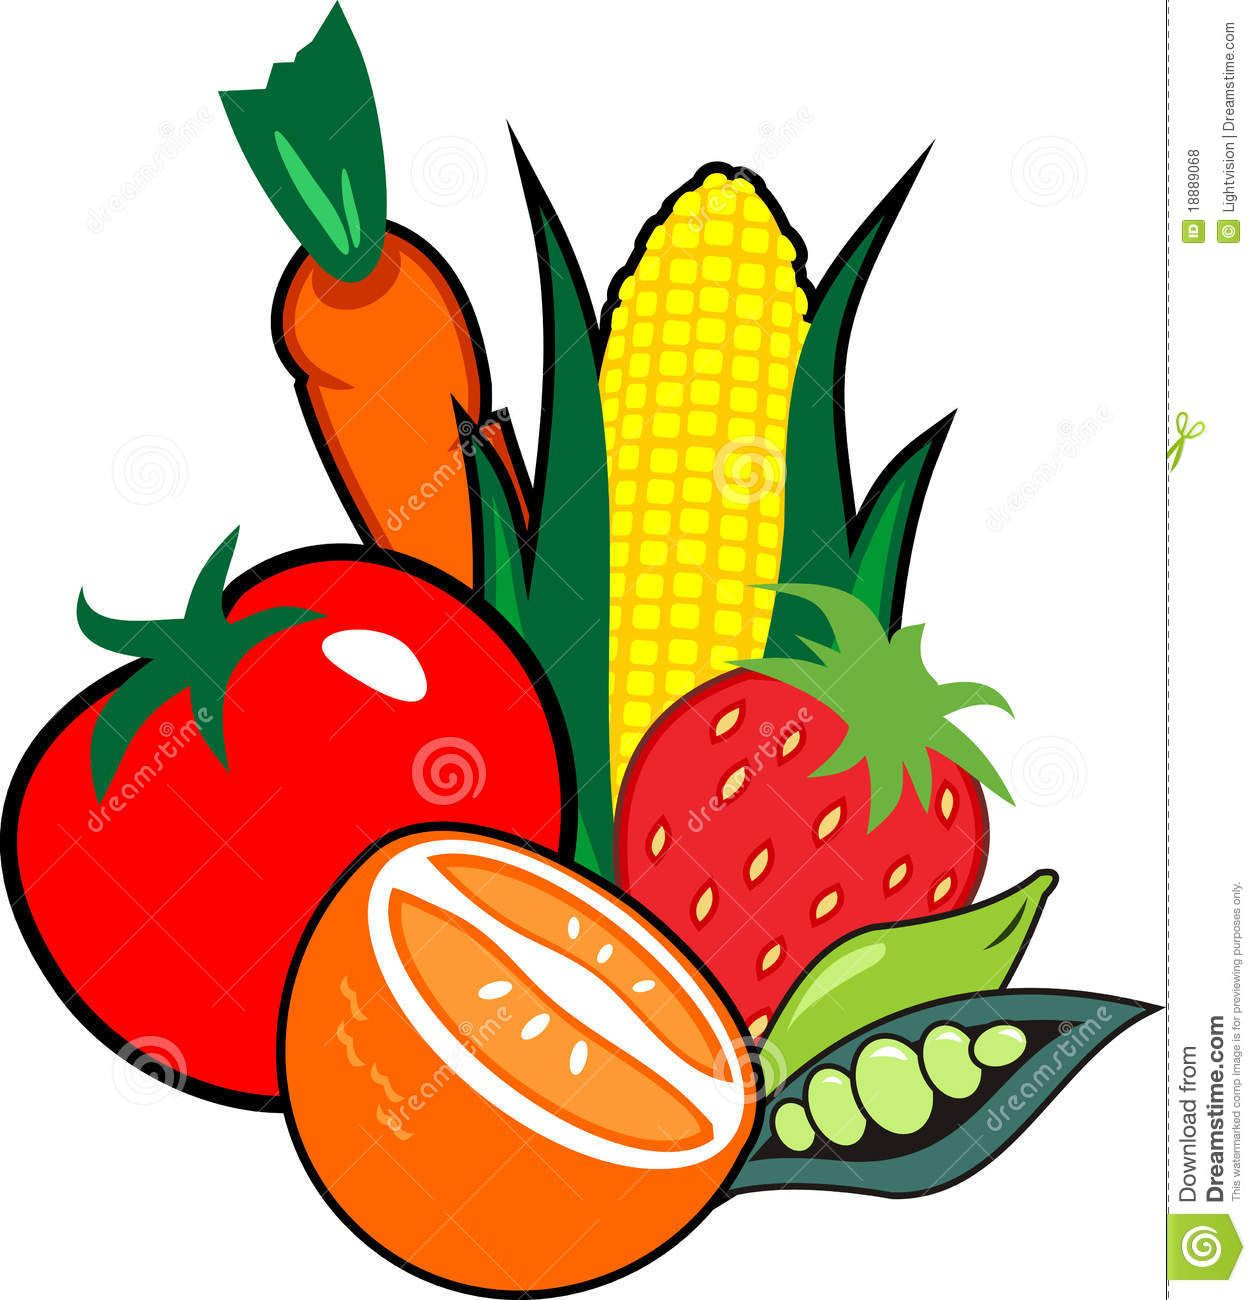 Fruit And Veggie Clipart at GetDrawings.com.